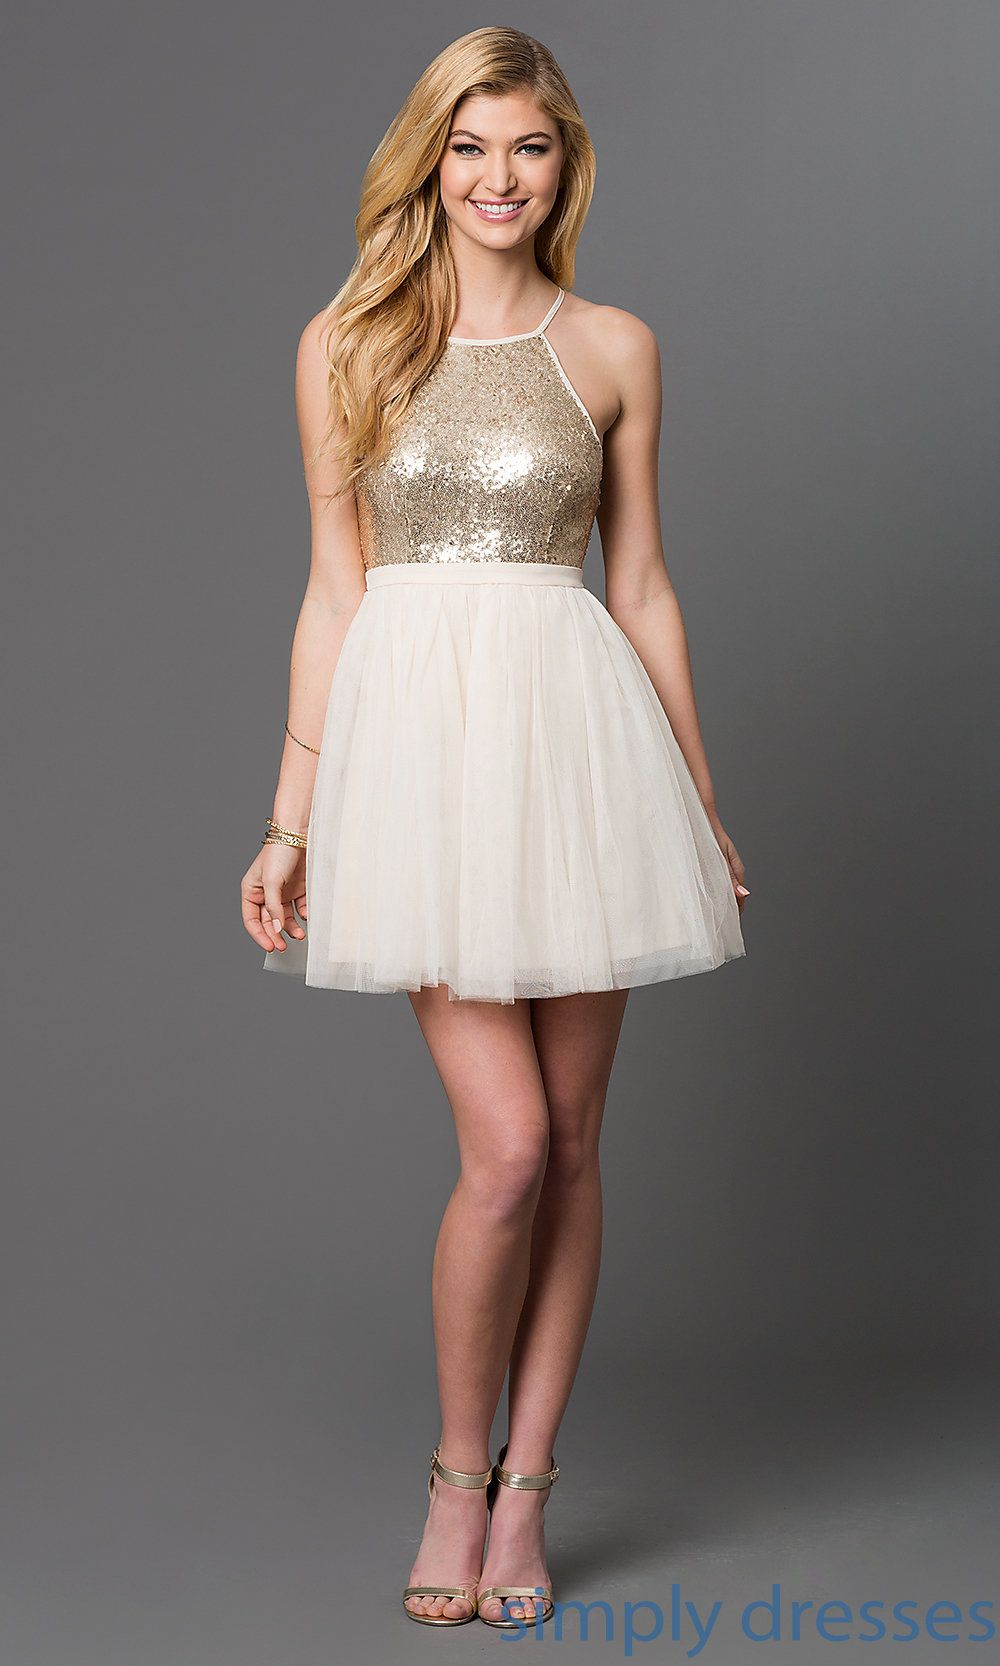 e400f59d0bfb Shop Simply Dresses for homecoming party dresses, 2015 prom dresses,  evening gowns, cocktail dresses, formal dresses, casual and career dresses.